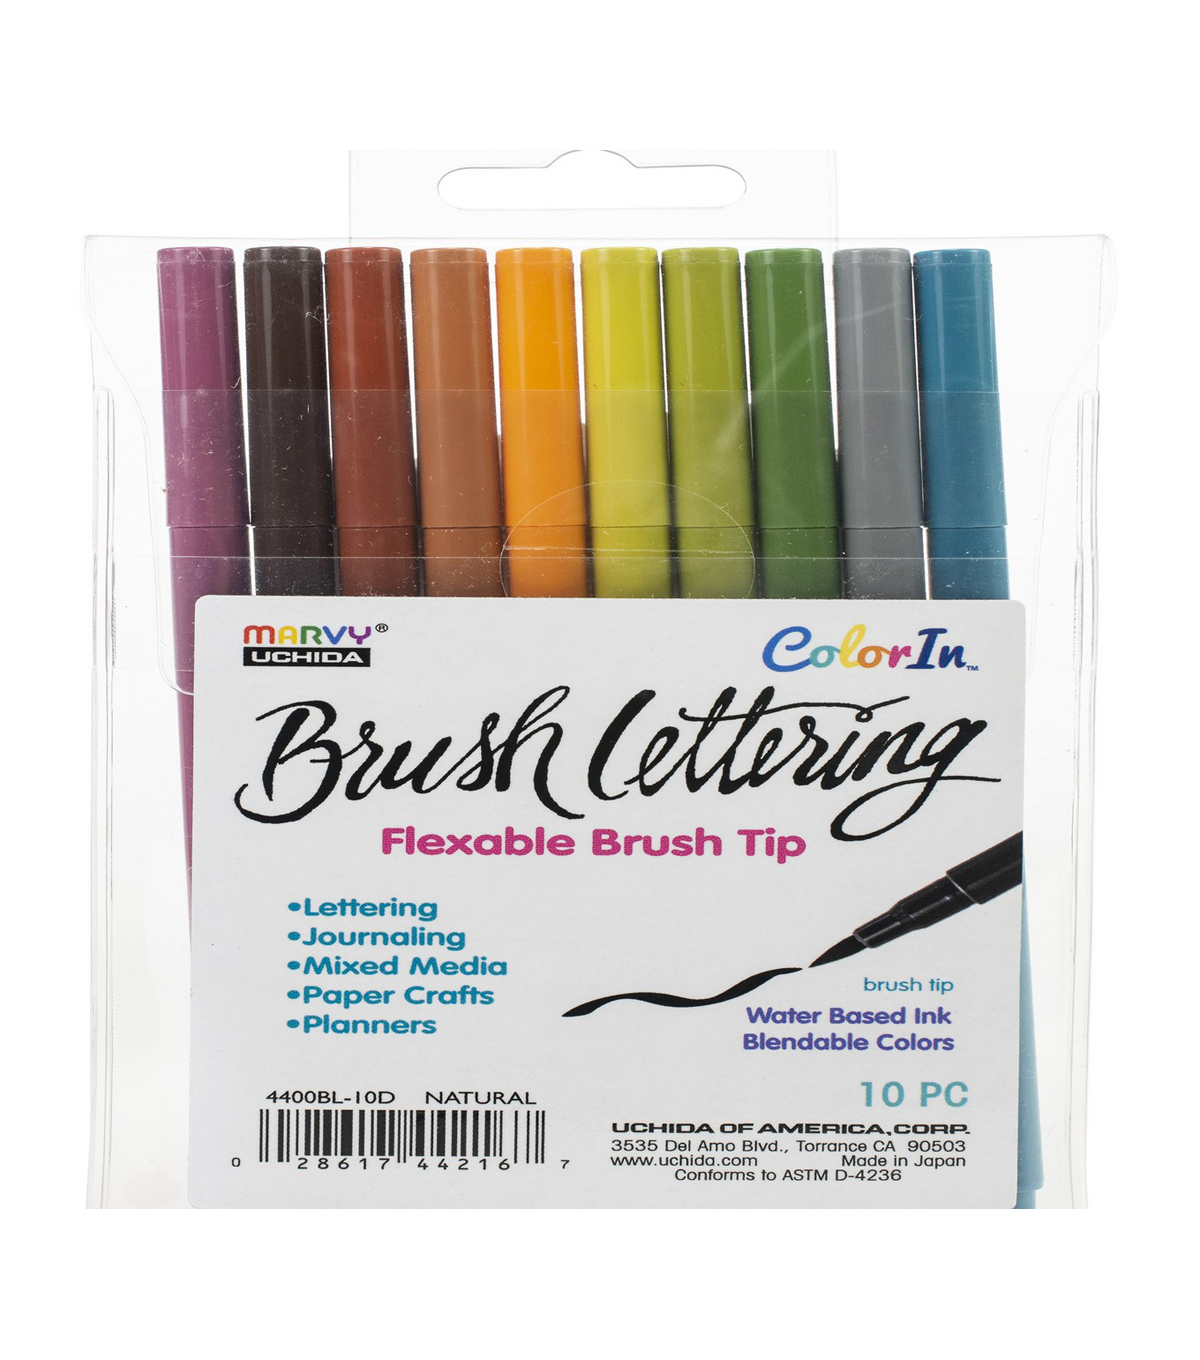 Marvy Uchida ColorIn 10 pk Brush Lettering Markers-Natural